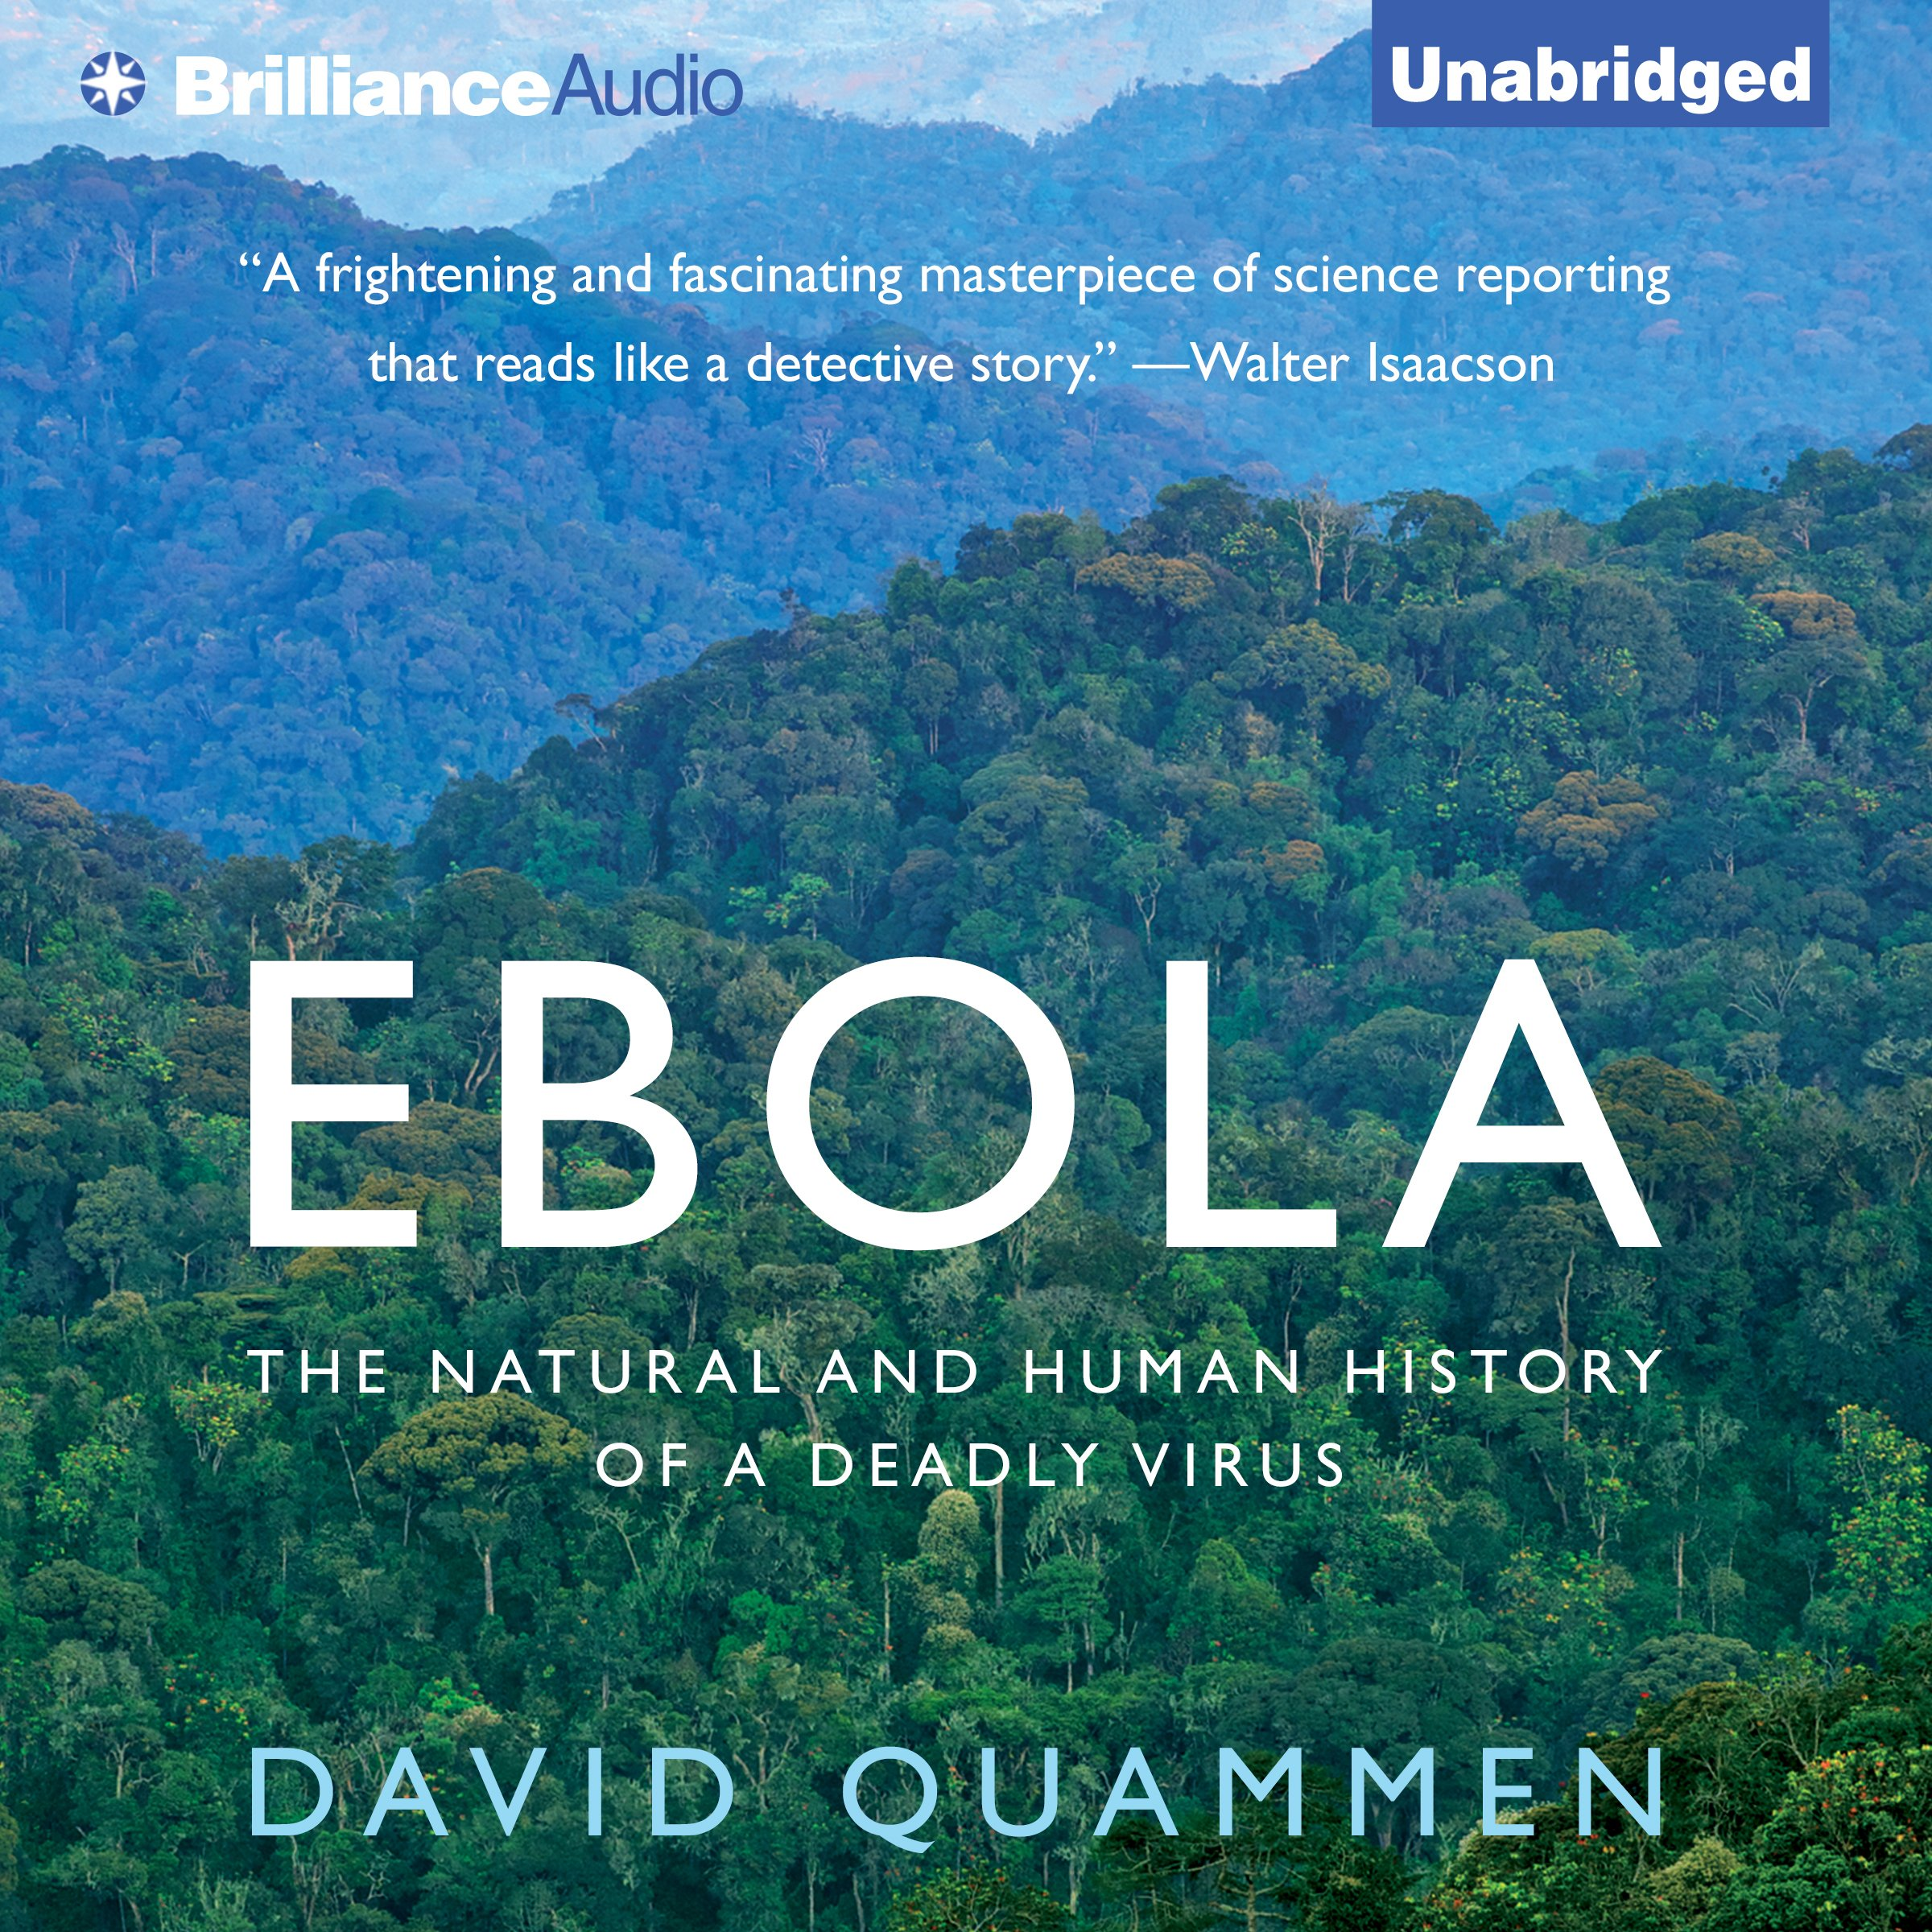 Ebola: The Natural and Human History of a Deadly